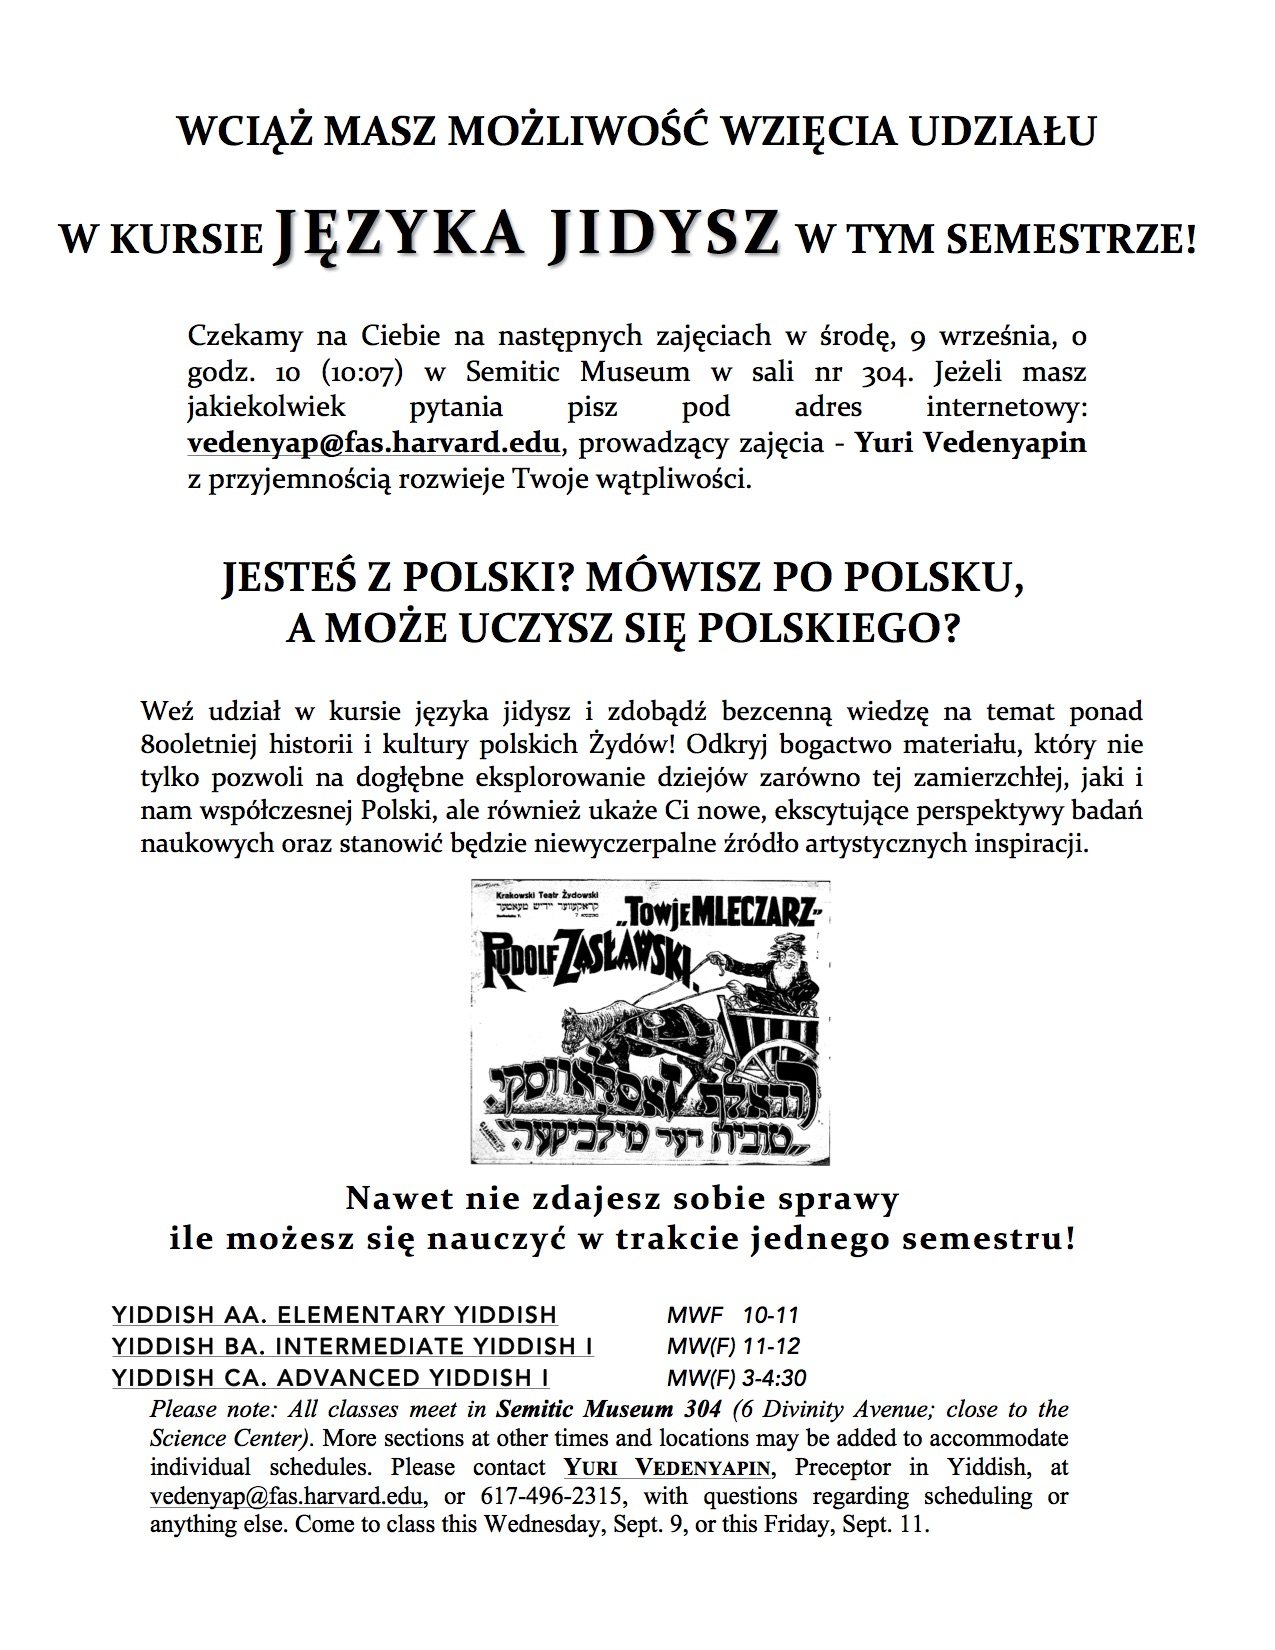 <p>From the Polish: Take a course in Yiddish and gain invaluable knowledge on the more than 800 year history of Polish Jewish&nbsp;culture!</p>